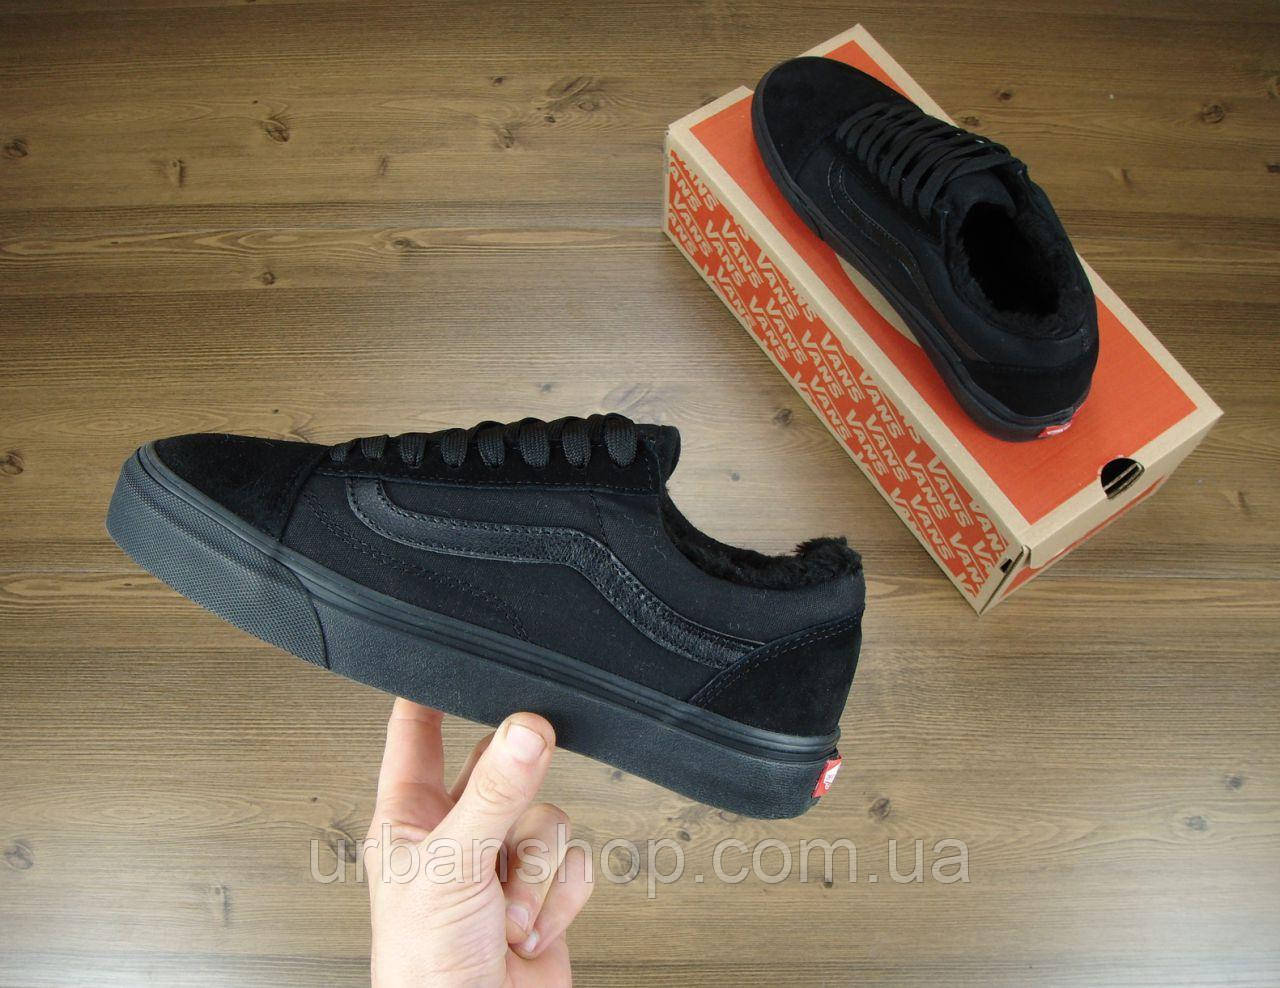 Кеды Vans Old Skool Winter Edition Black, зимние вансы с мехом